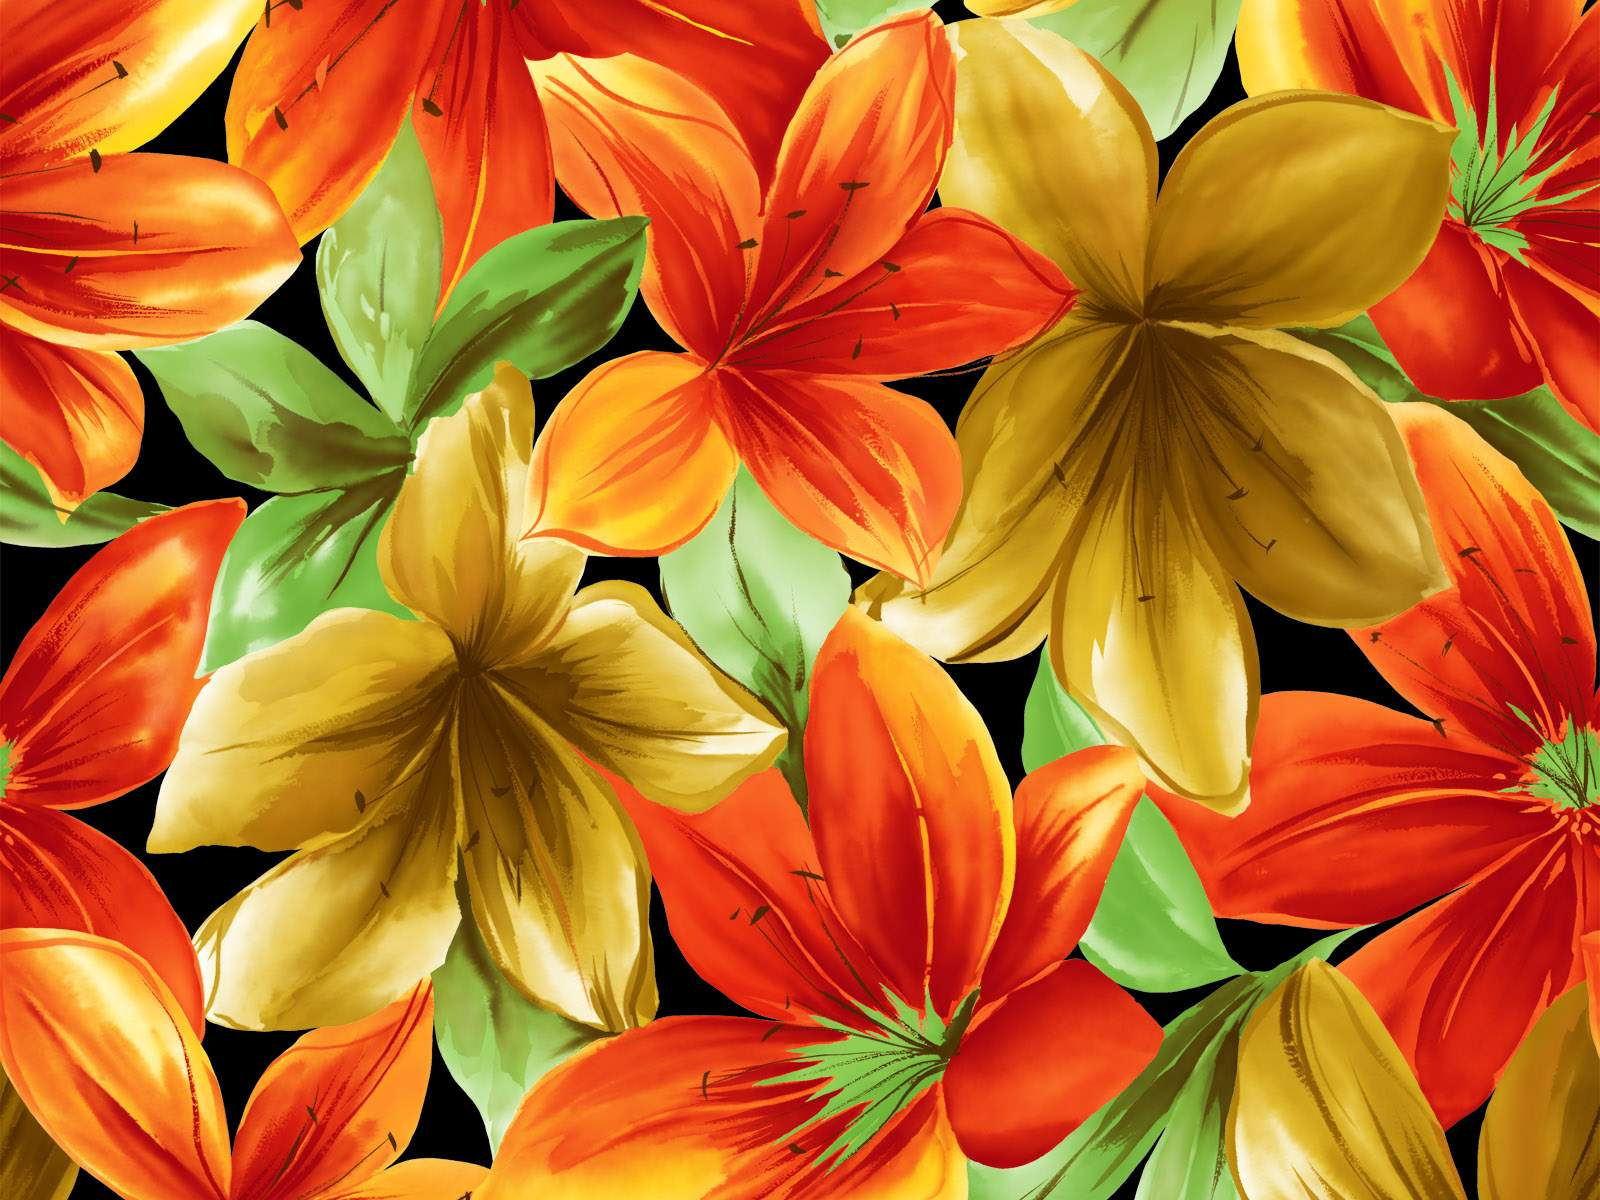 Wallpaper Oil Paintings Of Abstract Flowers Wallpaper